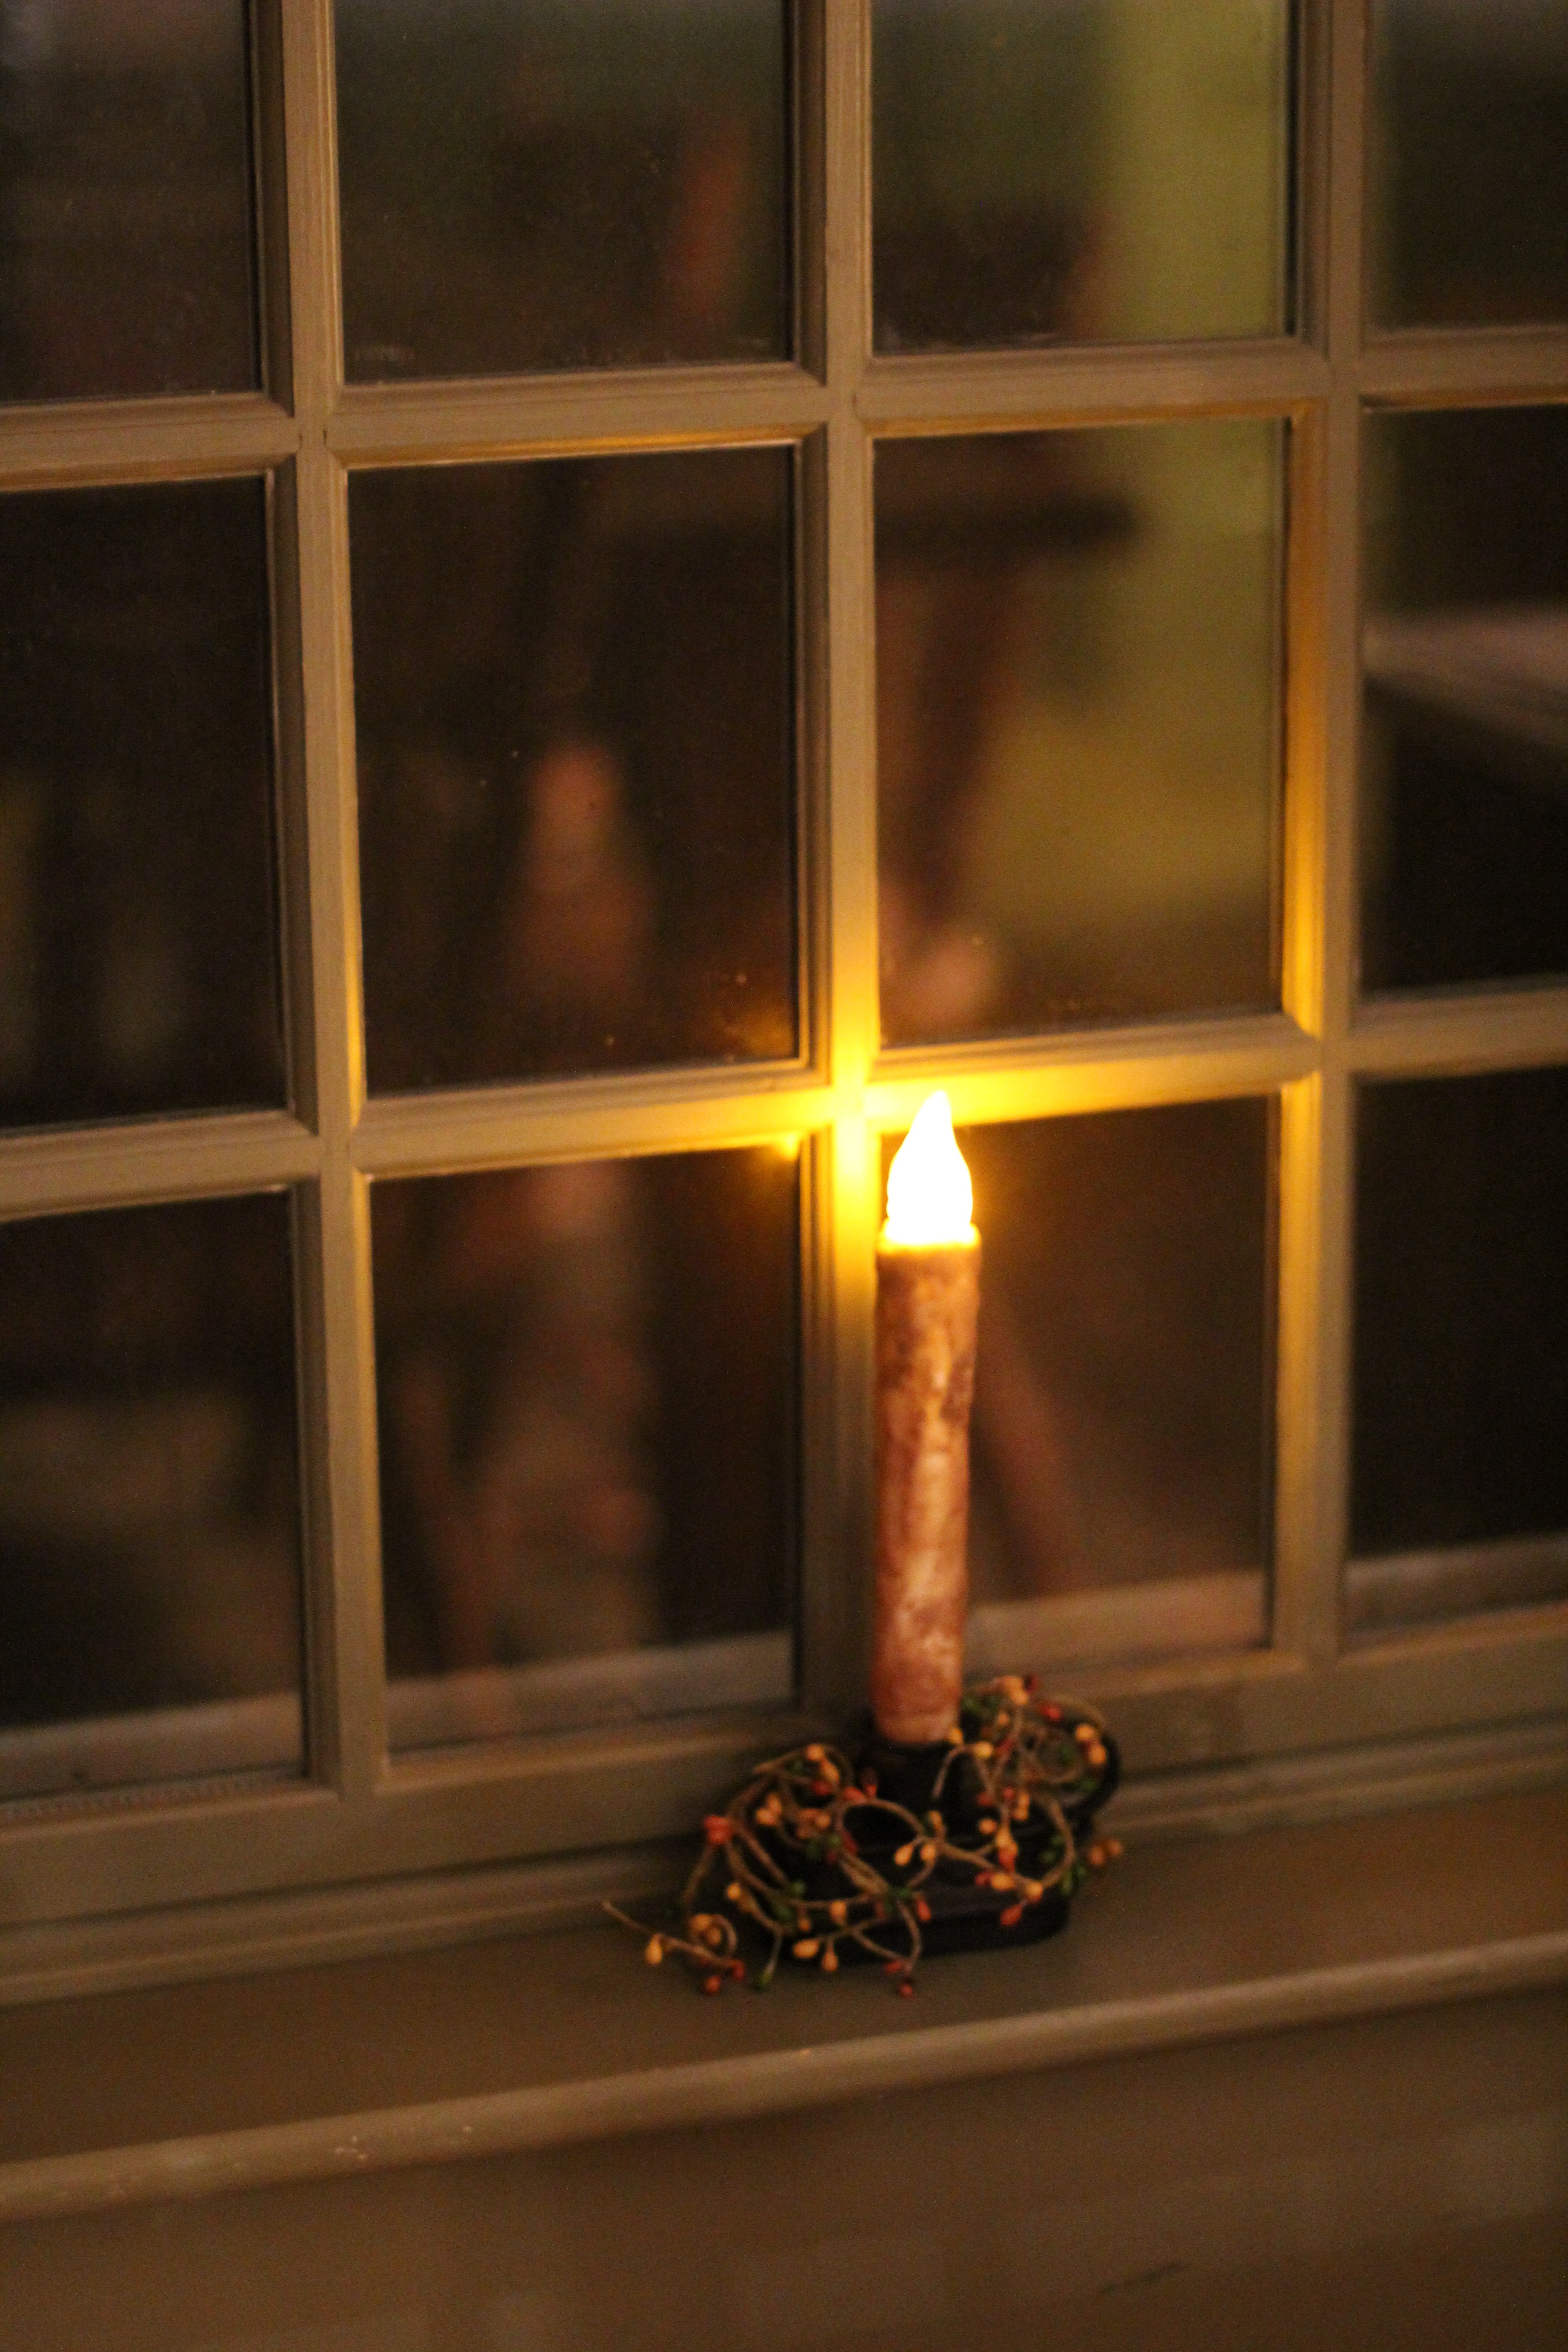 Battery operated window candles with timer - Last Christmas I Bought Battery Operated Window Candlesticks At A Benny S A Local Hardware Store I Got The Type That You Set Once And They Turn On